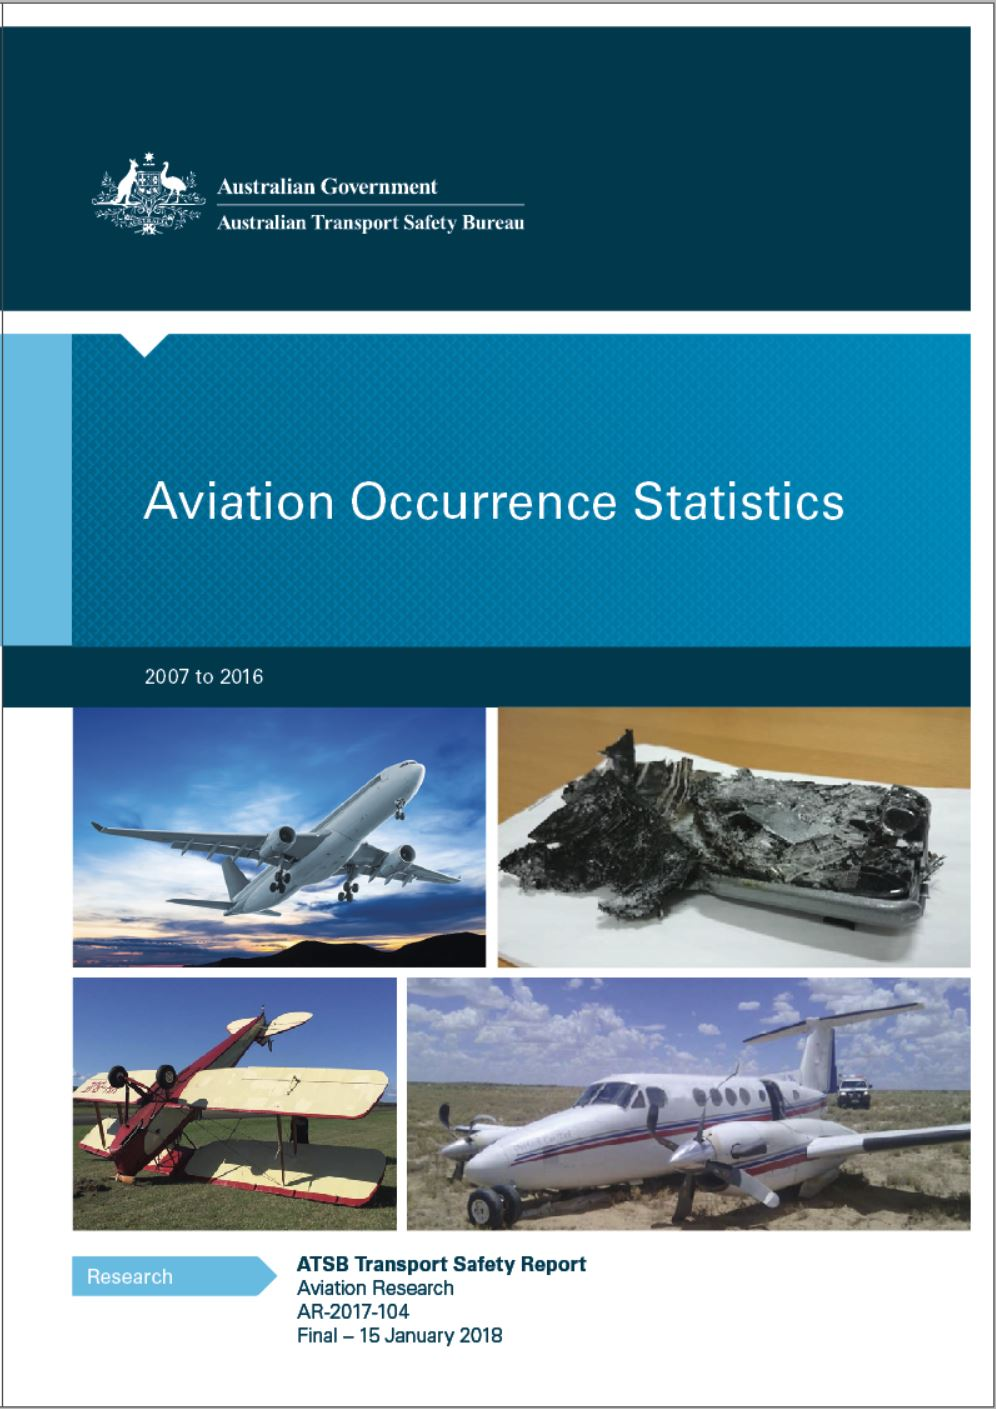 Aviation Occurrence Statistics 2007 to 2016